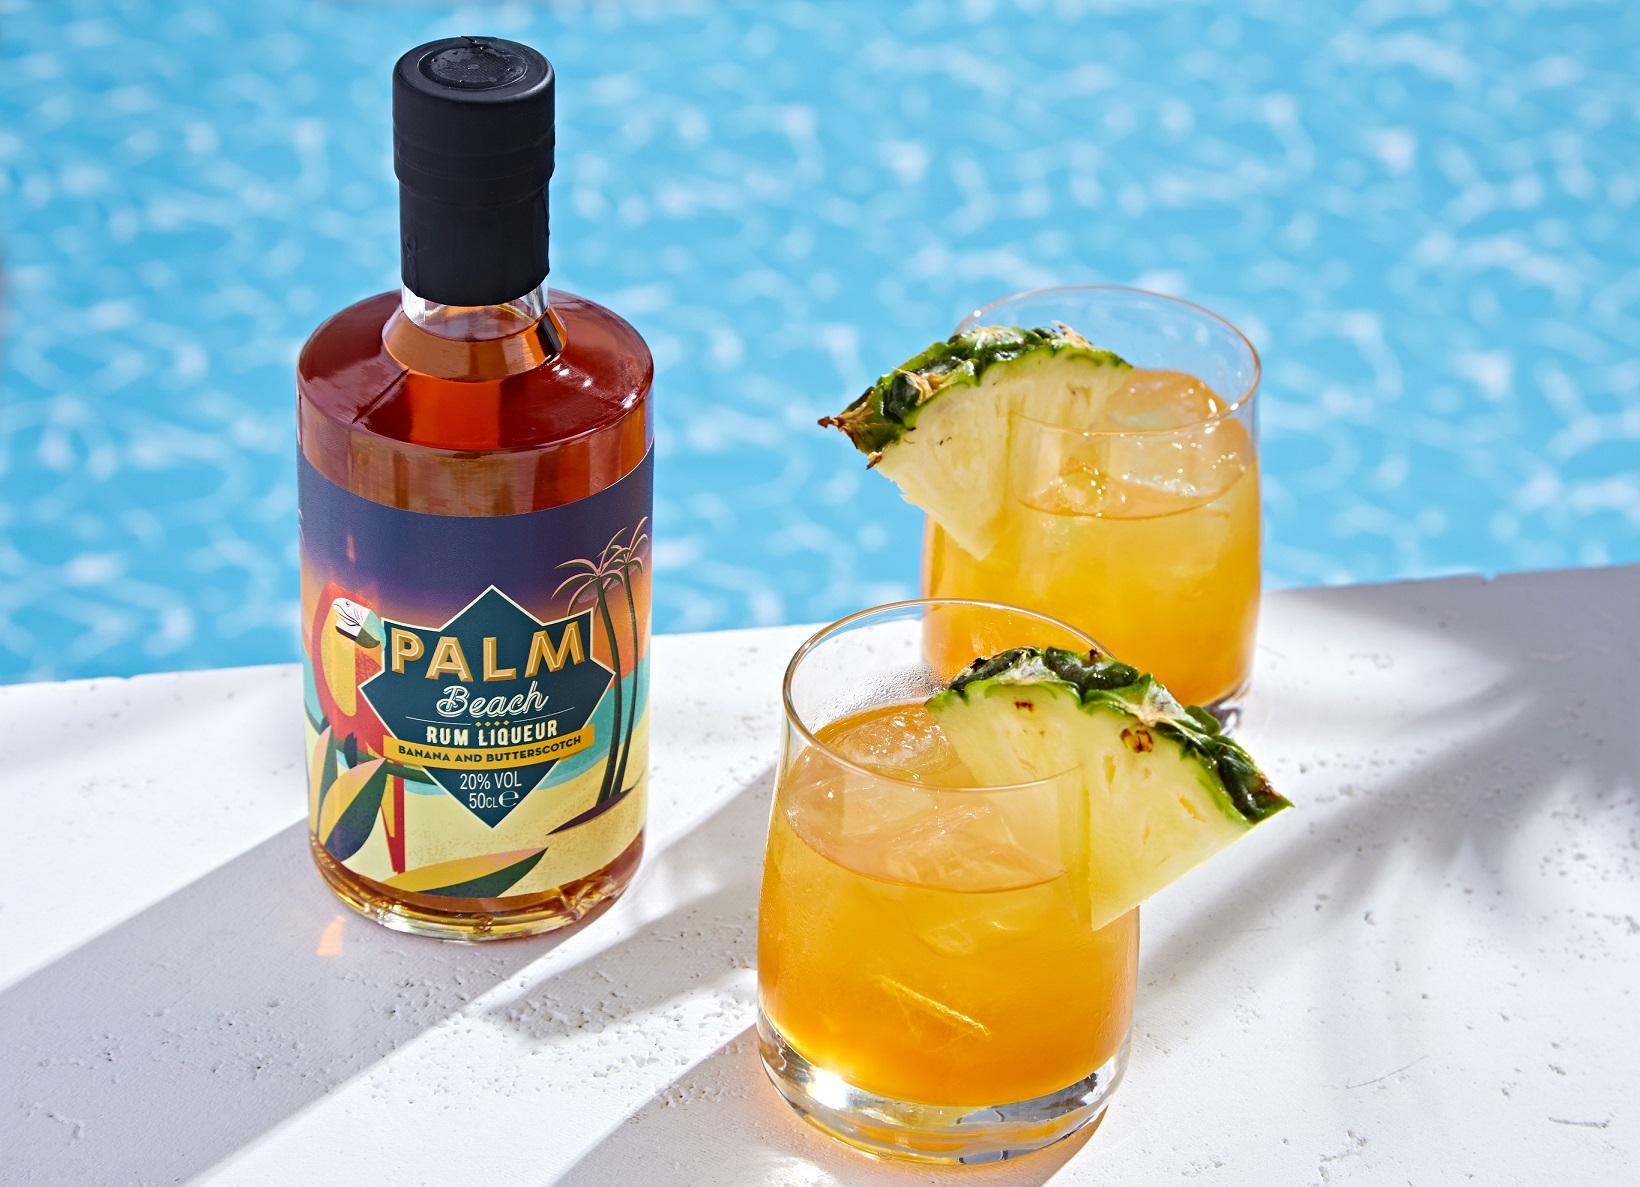 NEW! Palm Beach - Banana & Butterscotch. Cocktail - Banana Mai Tai